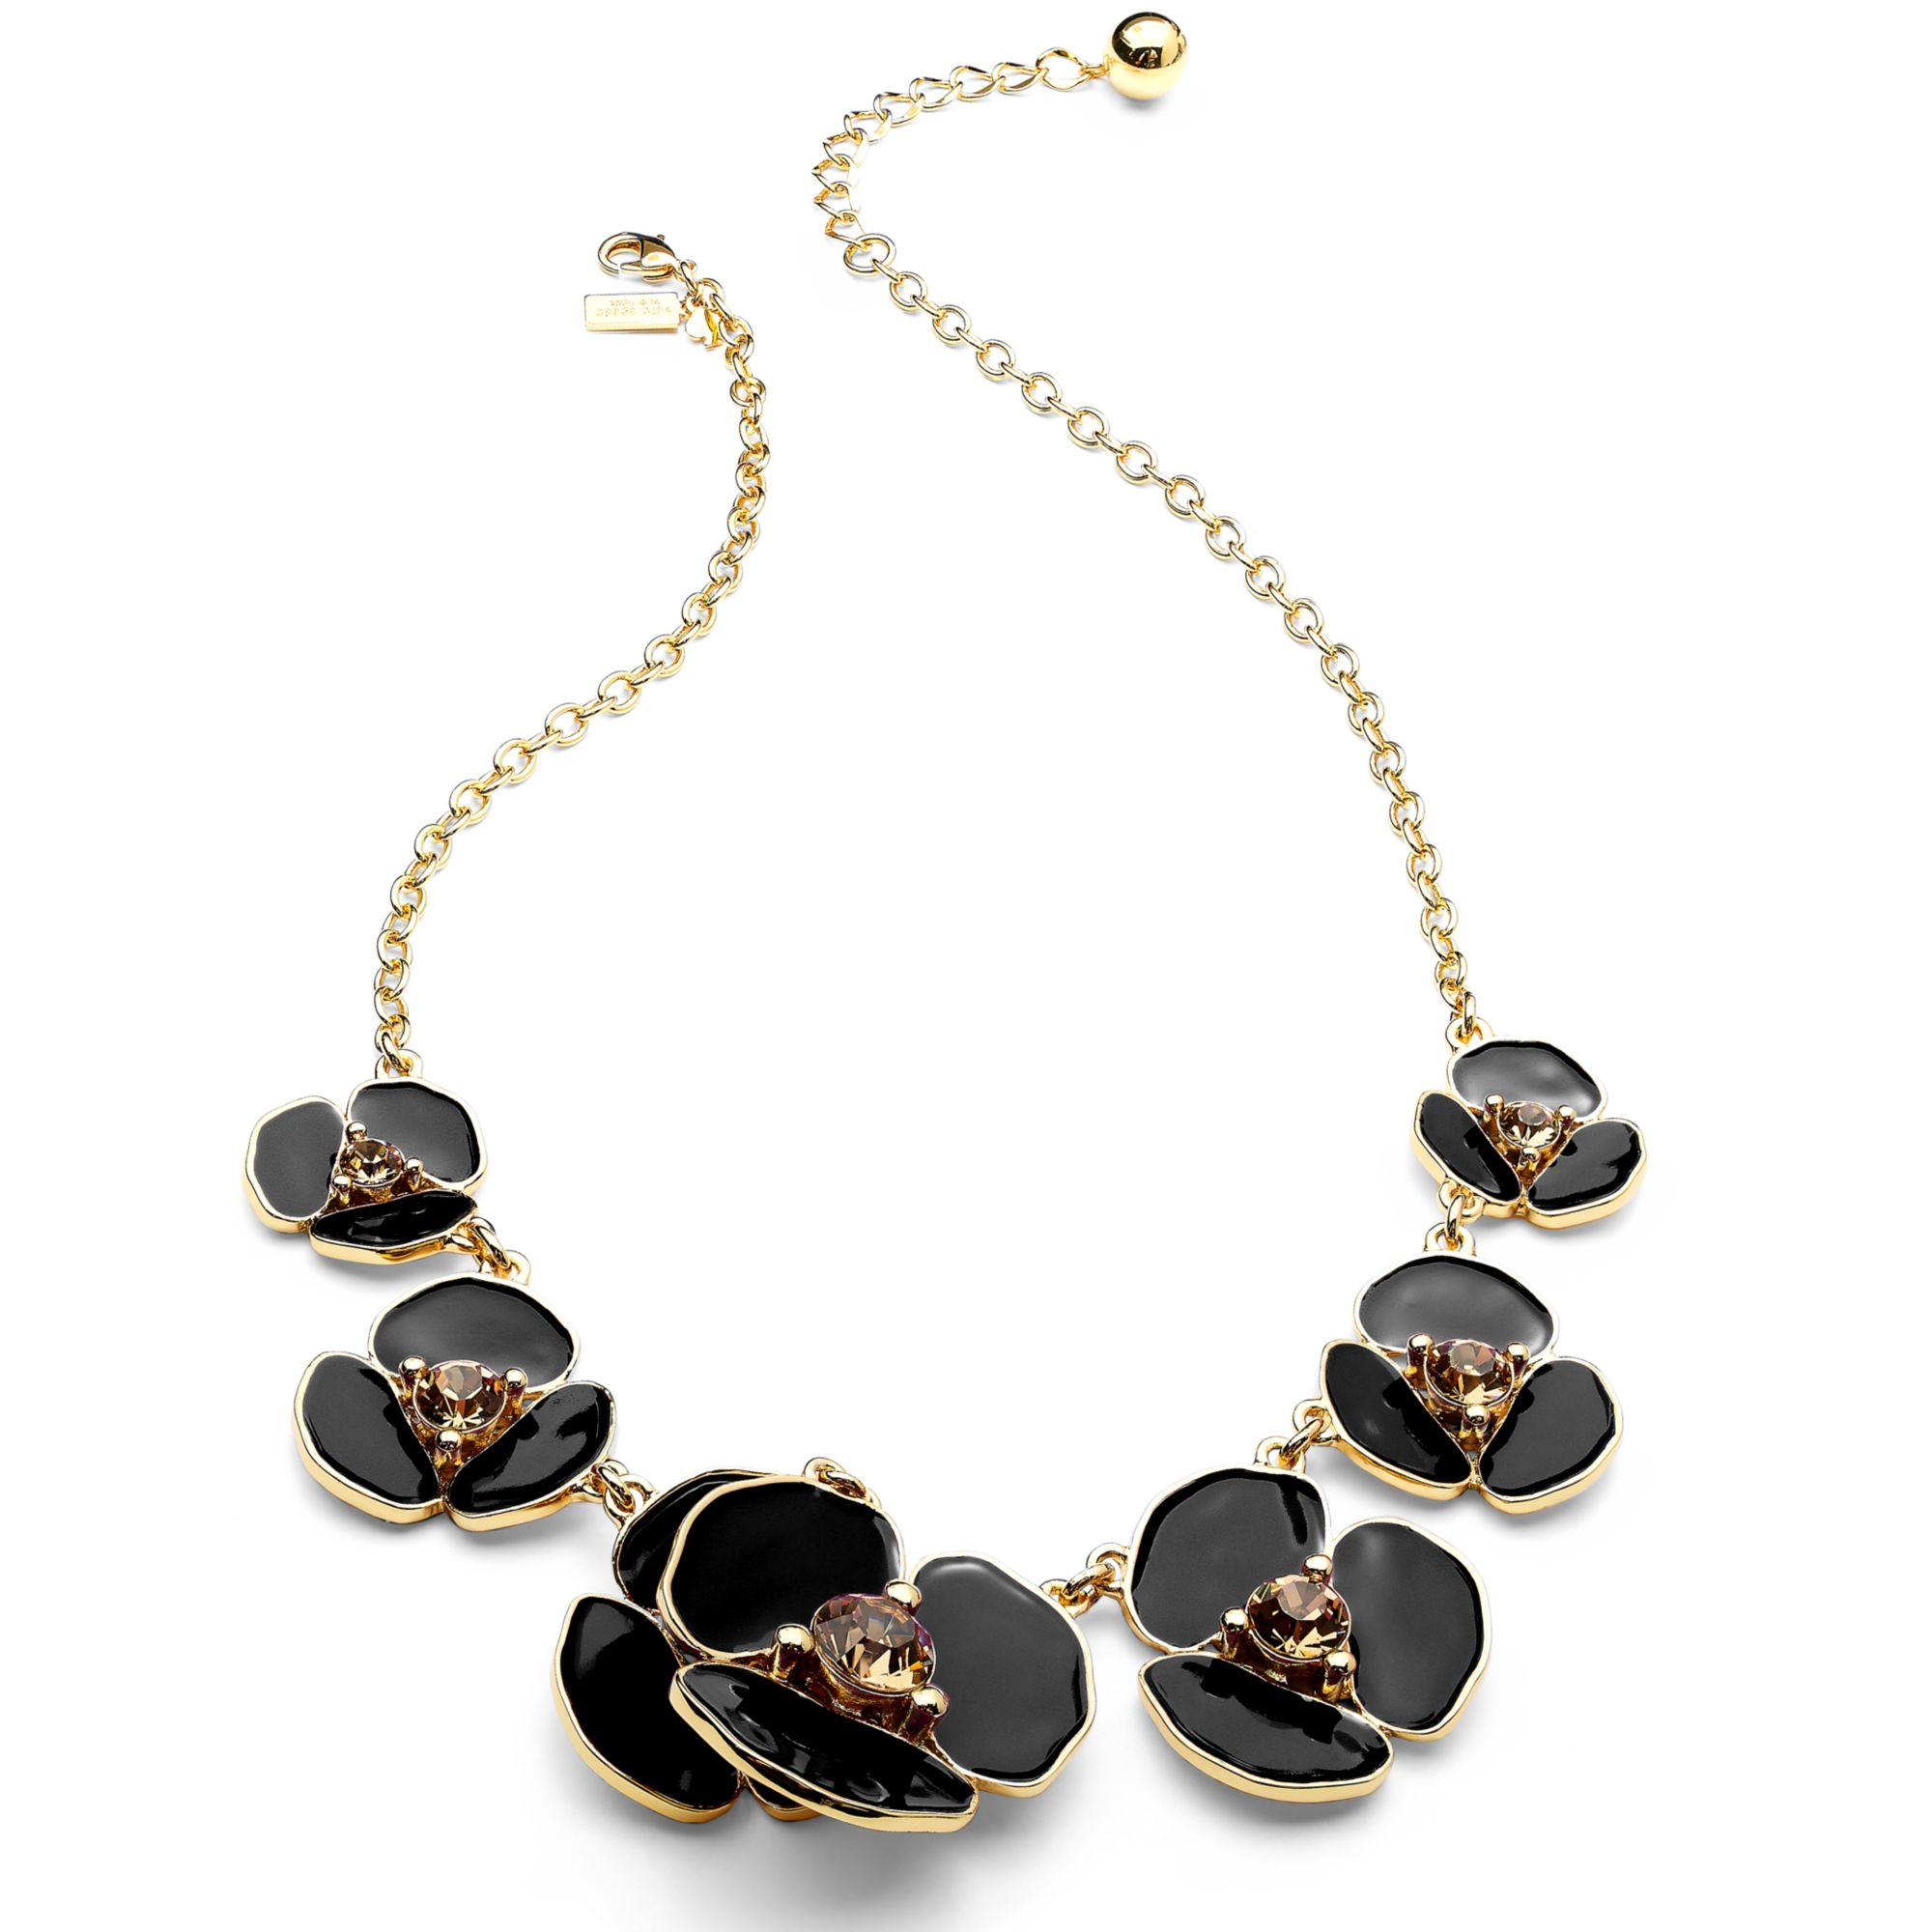 2536a0a78829f kate spade new york Multicolor New York Necklace 12k Gold Plated Disco  Pansy Black Graduated Necklace